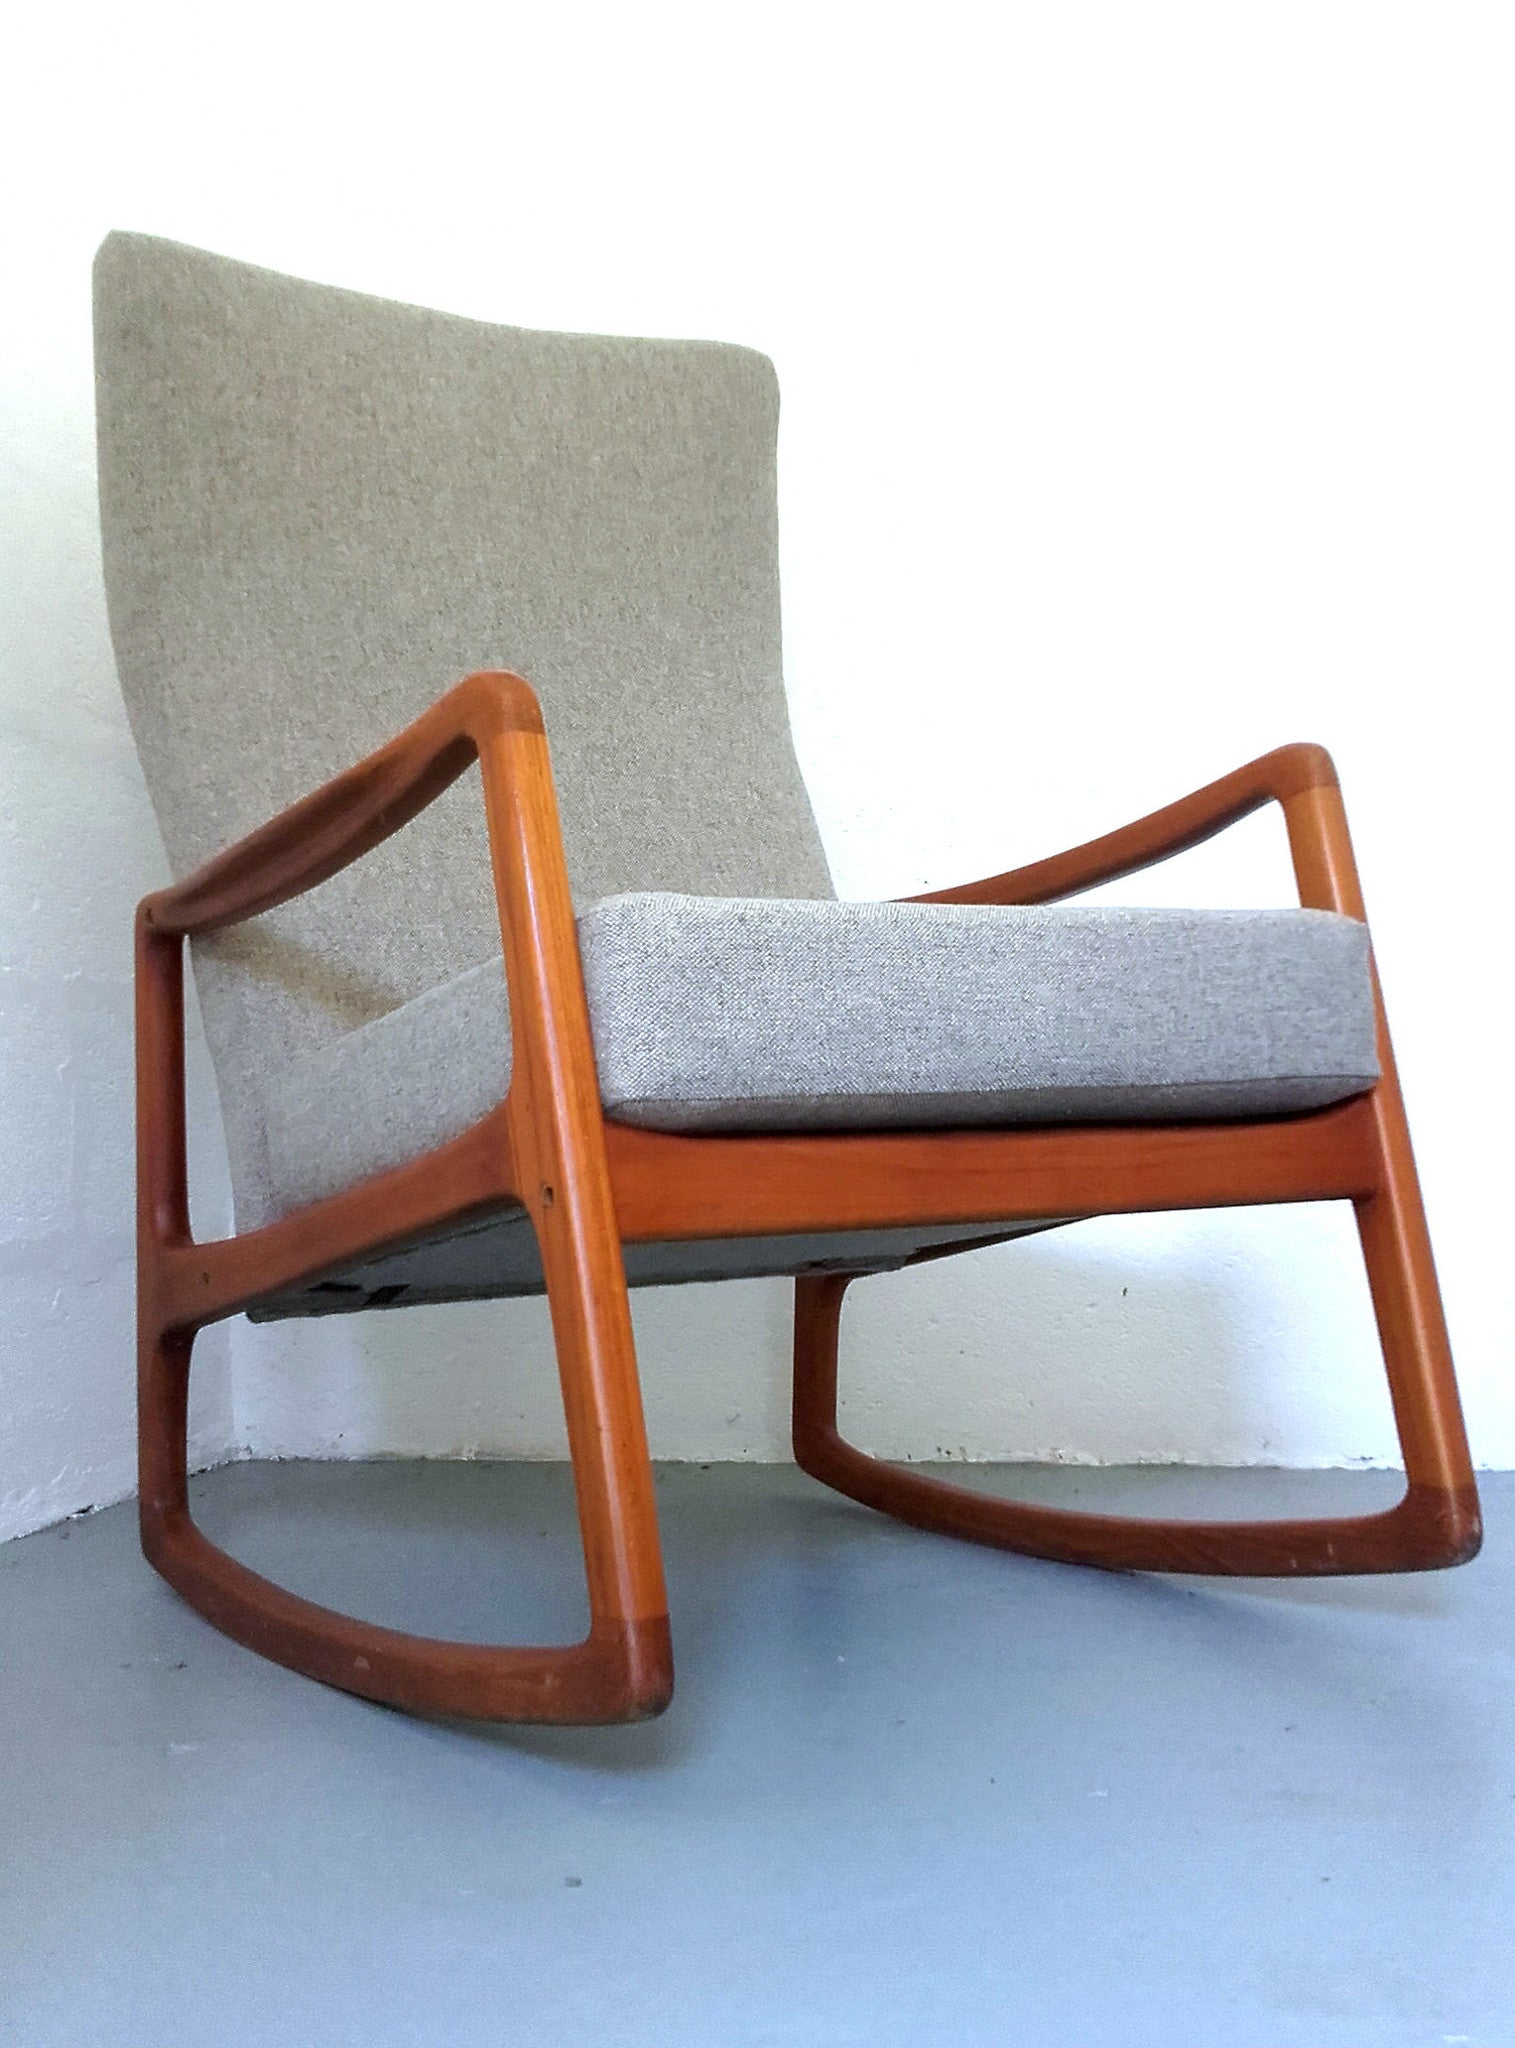 Danish Modern Rocking Chair Model 160 By Ole Wanscher For France